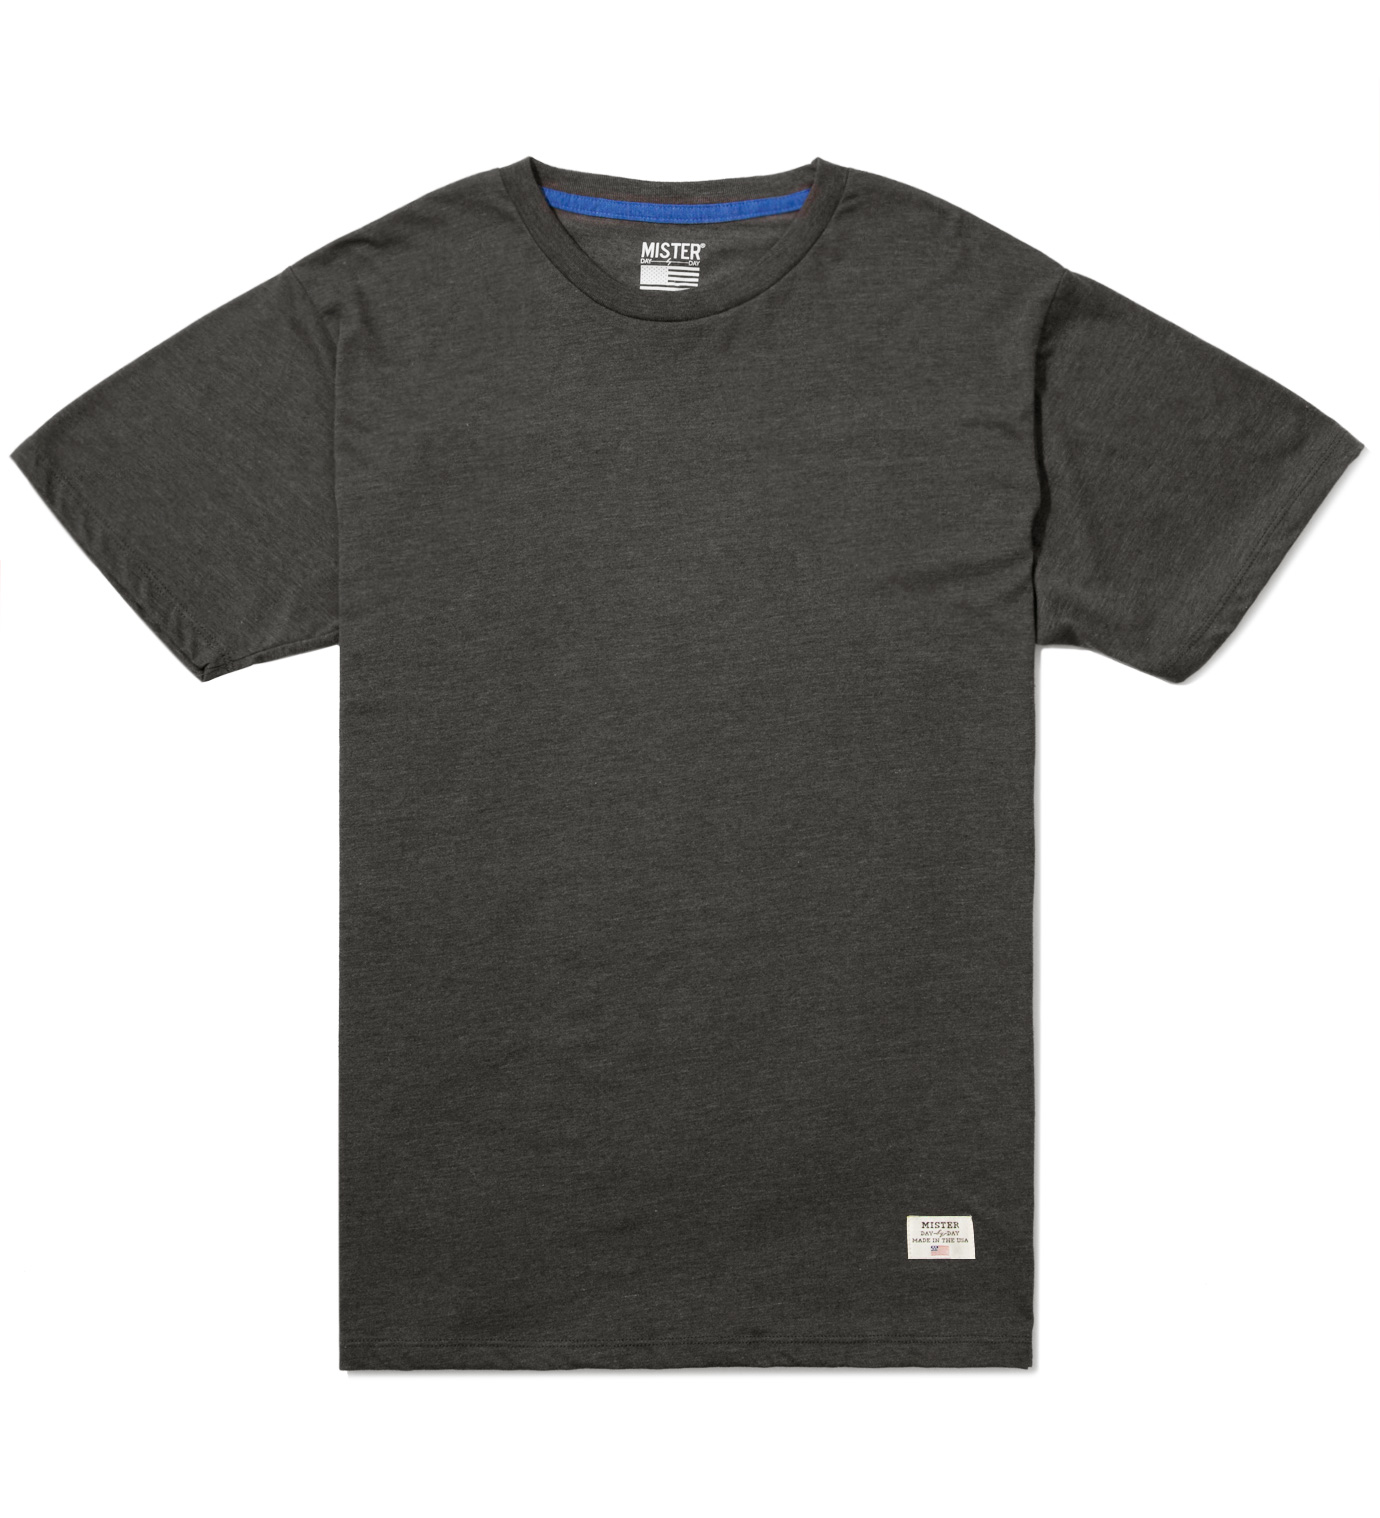 Mister Charcoal Mr. Tee Immediate T-Shirt